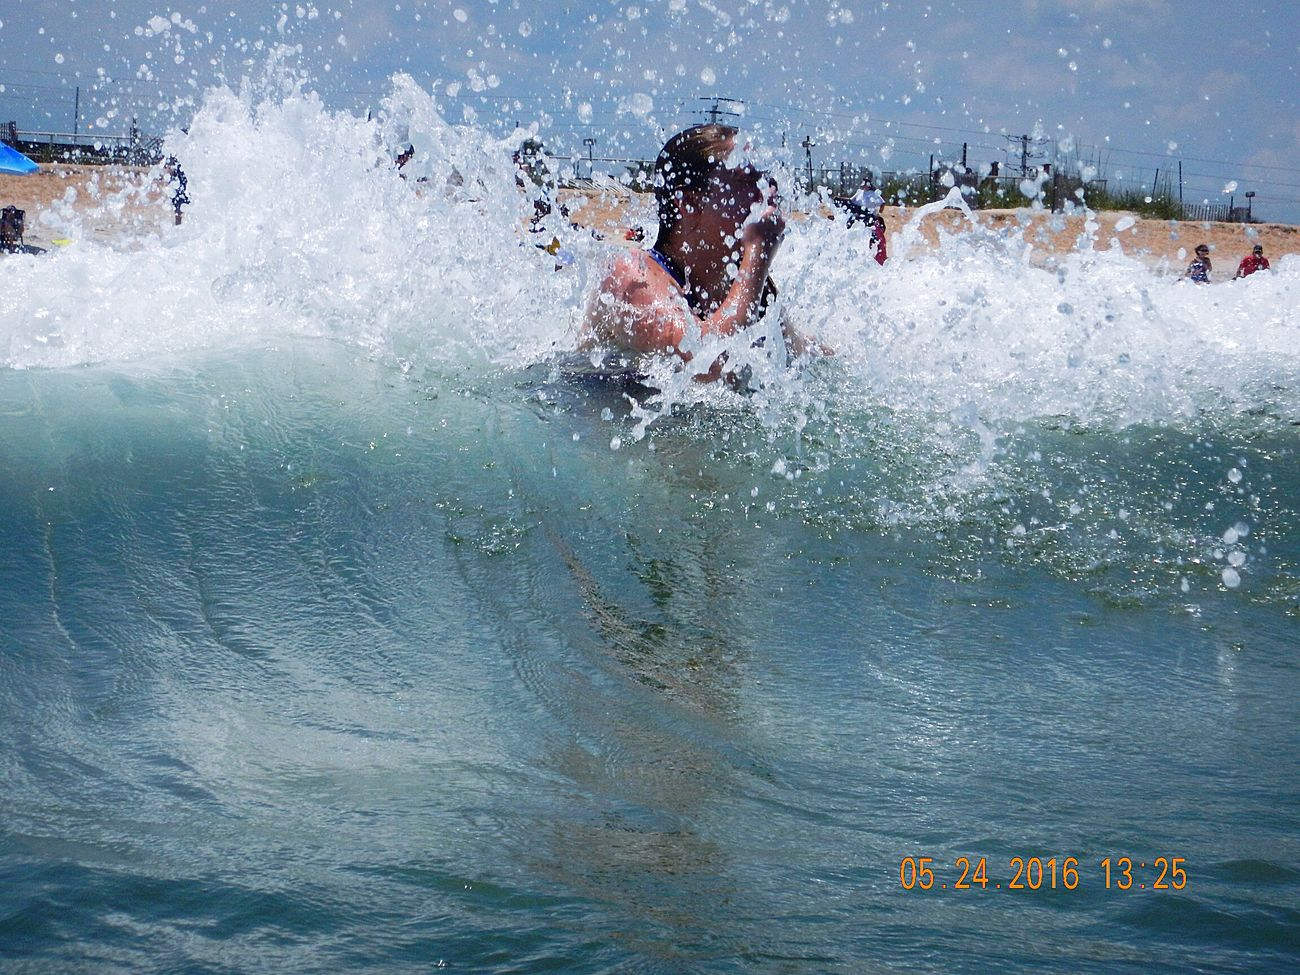 One Person Leisure Activity Water EyeEmbestshots Pictureoftheday Eye4photography  Check This Out Taking Photos Enjoying Life Vacation Travel Destinations Family Vacation FamilyTime FAMILY <3 Splashing Waves Splash Photography Ocean Waves Ocean Photography Ocean_Collection ~~ Daughter Enjoying Nature Daughtersareawesome